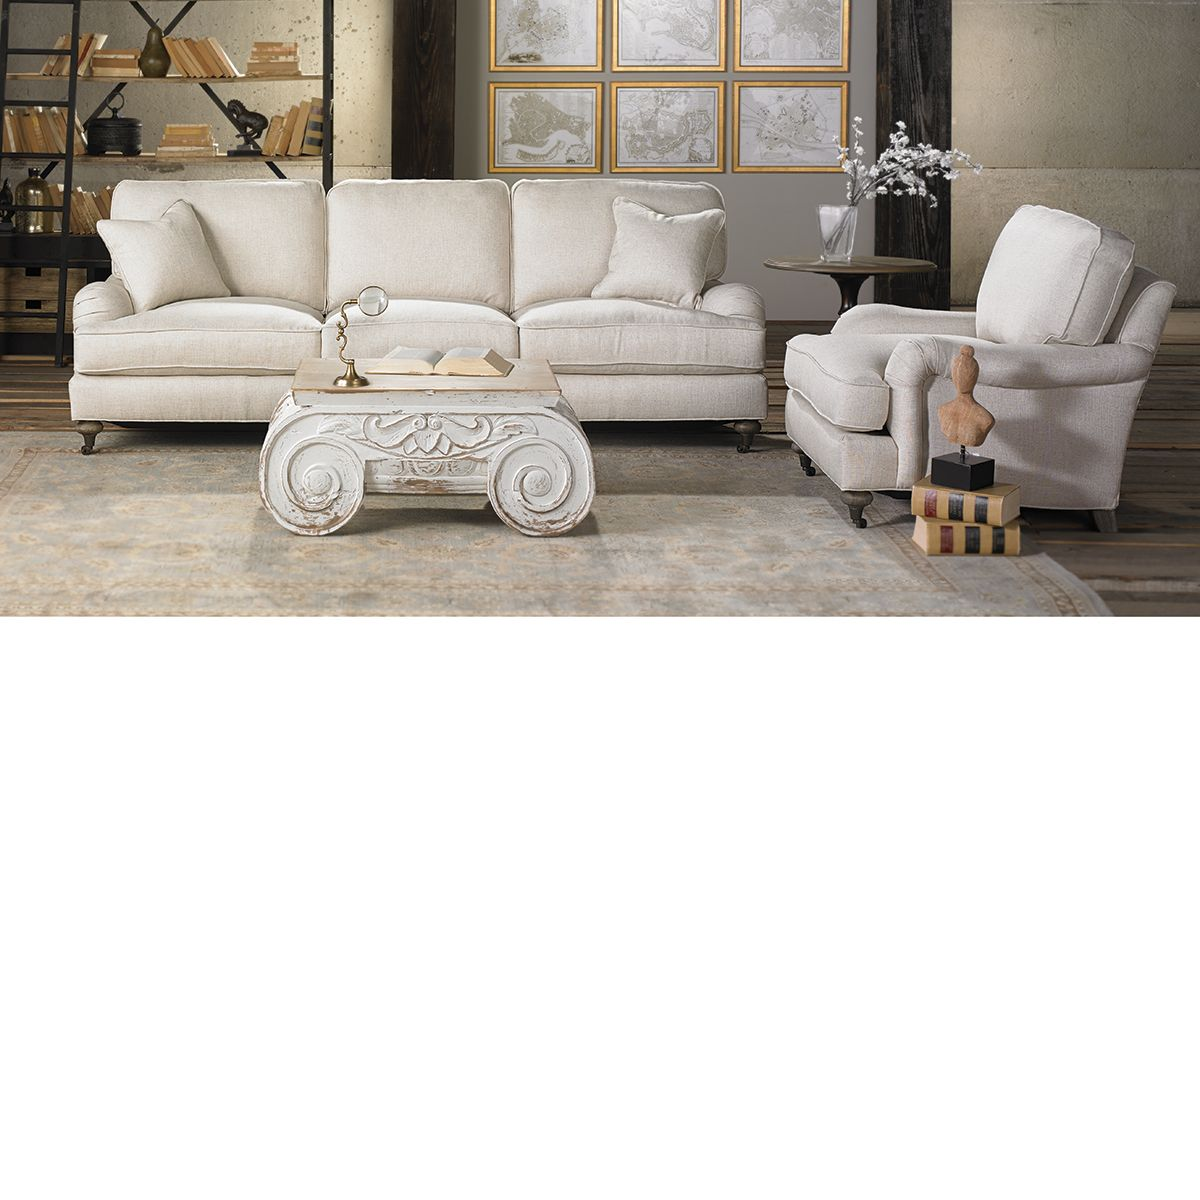 Sofa BedSleeper Sofa The Dump Furniture Outlet CHARLES OF LONDON FEATHER DOWN SOFA